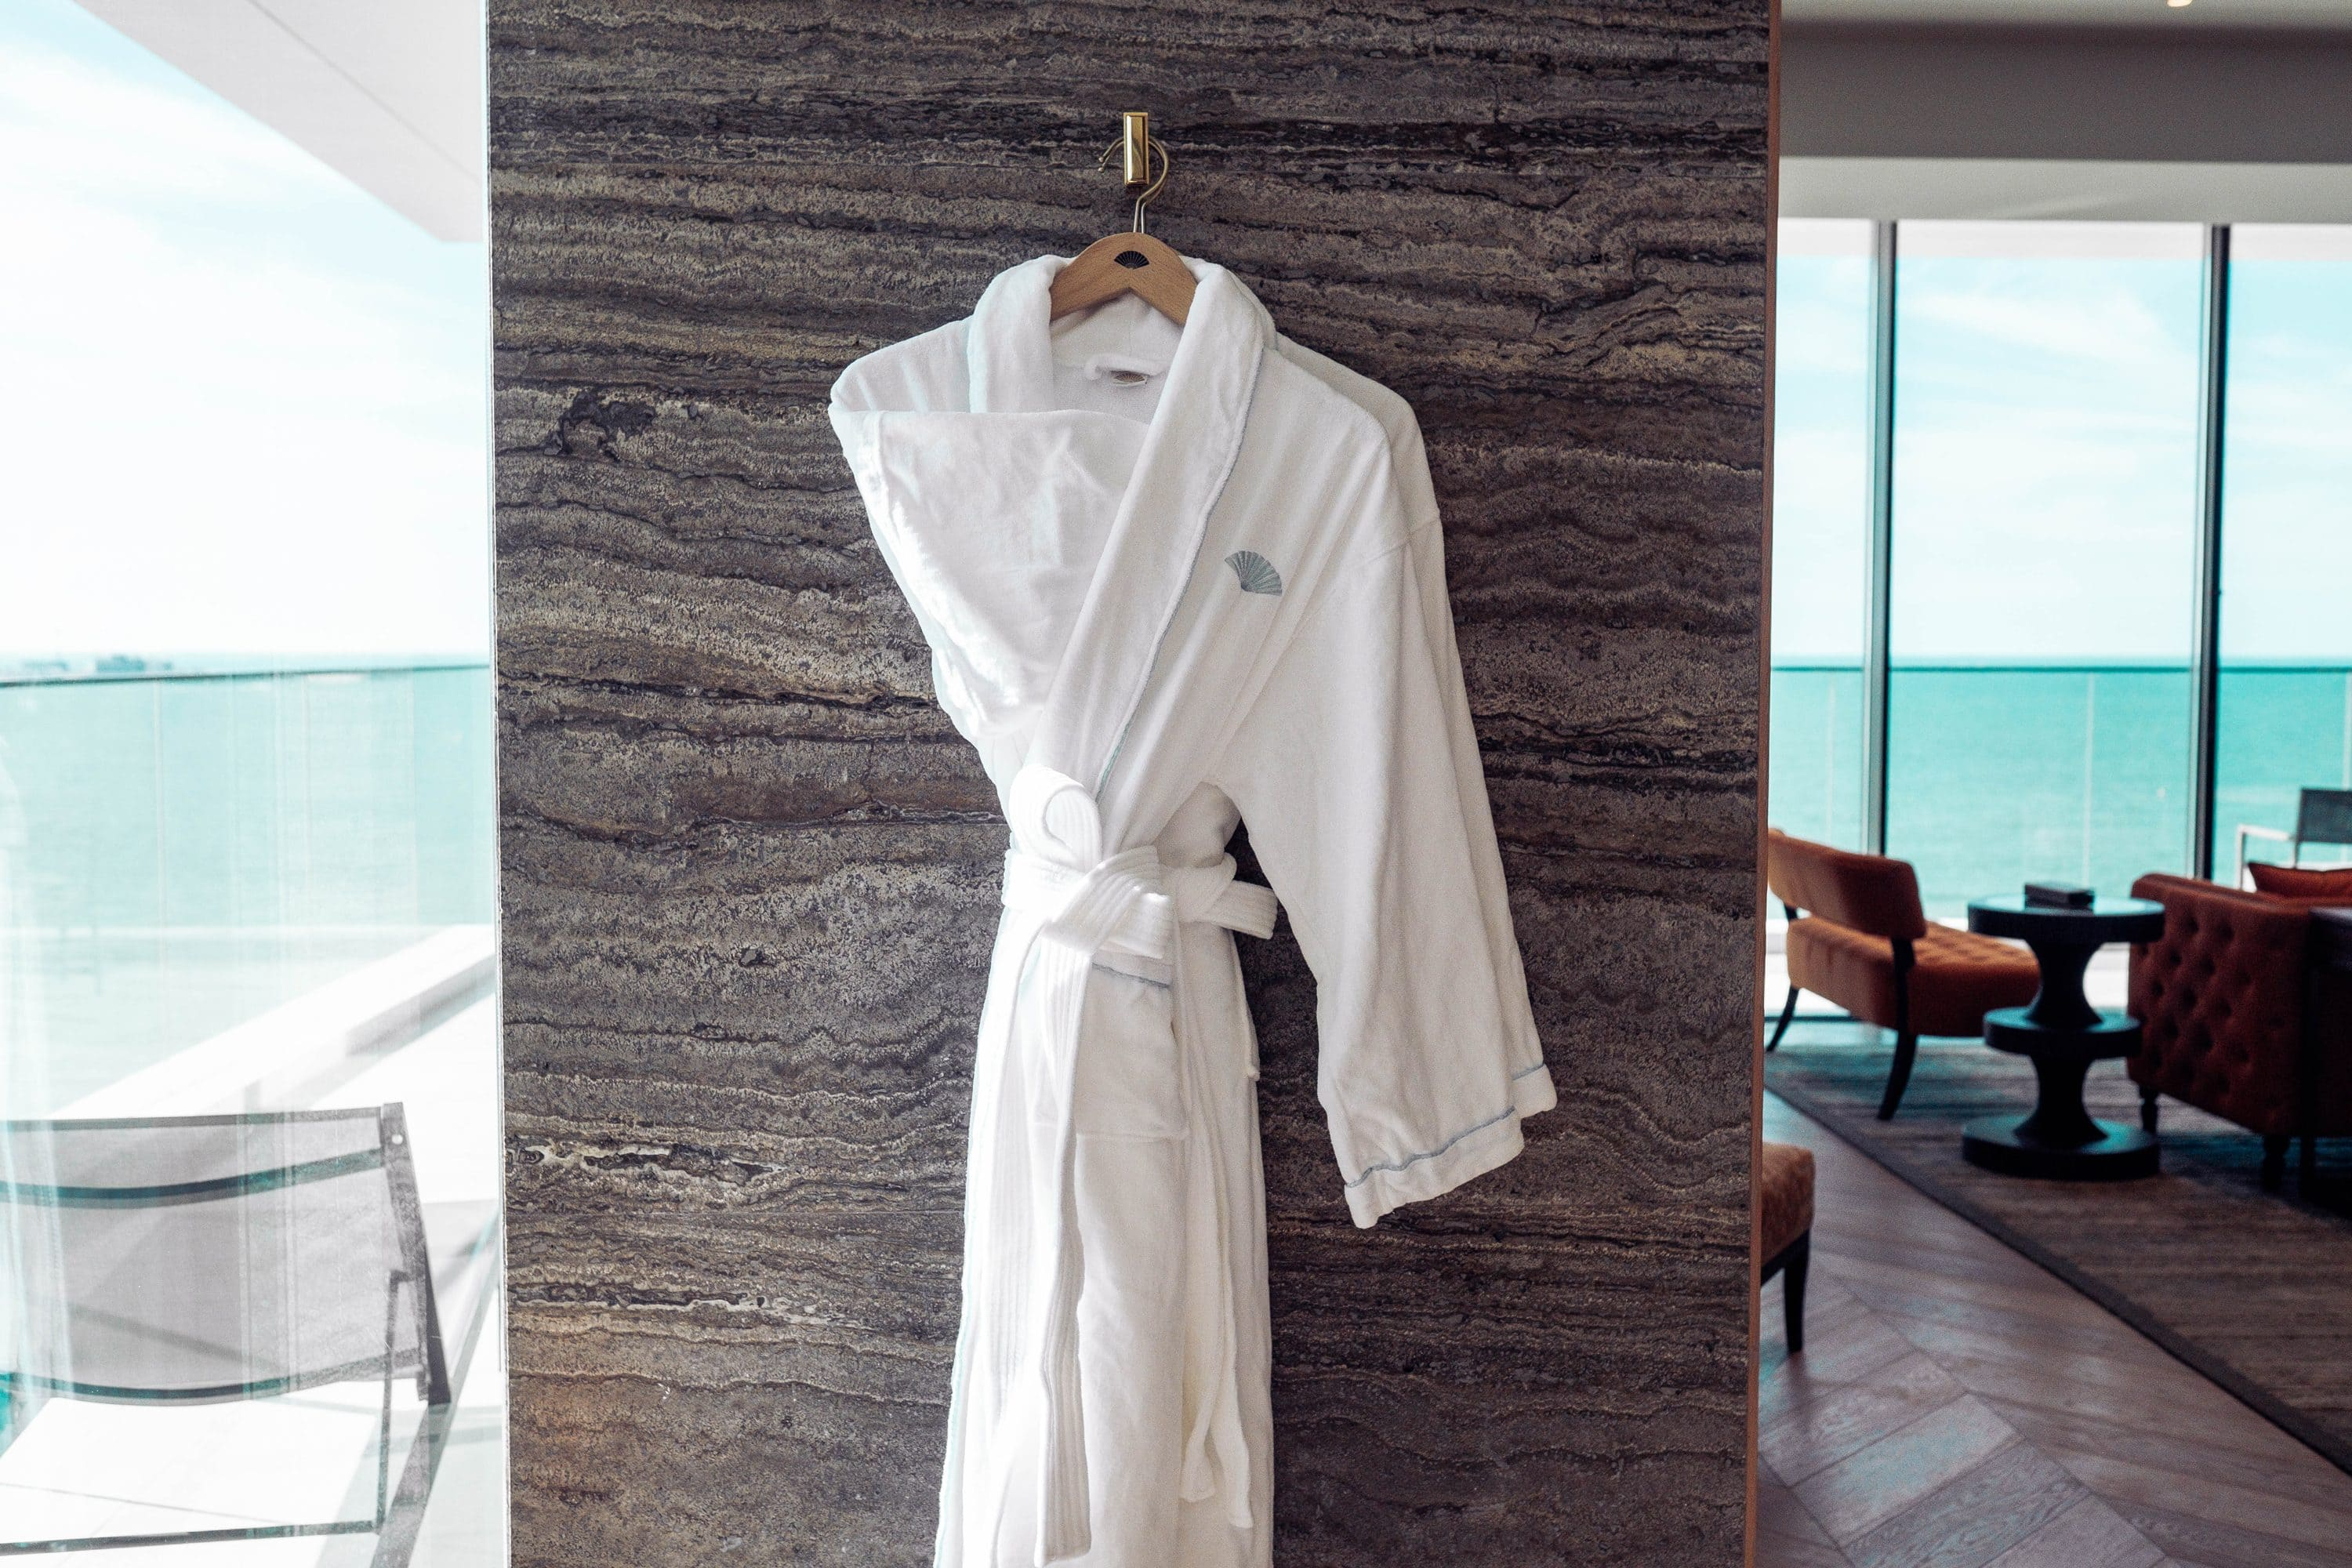 A plush bath robe hanging in the bathroom of the Seafront Suite, with views looking out onto the water beyond